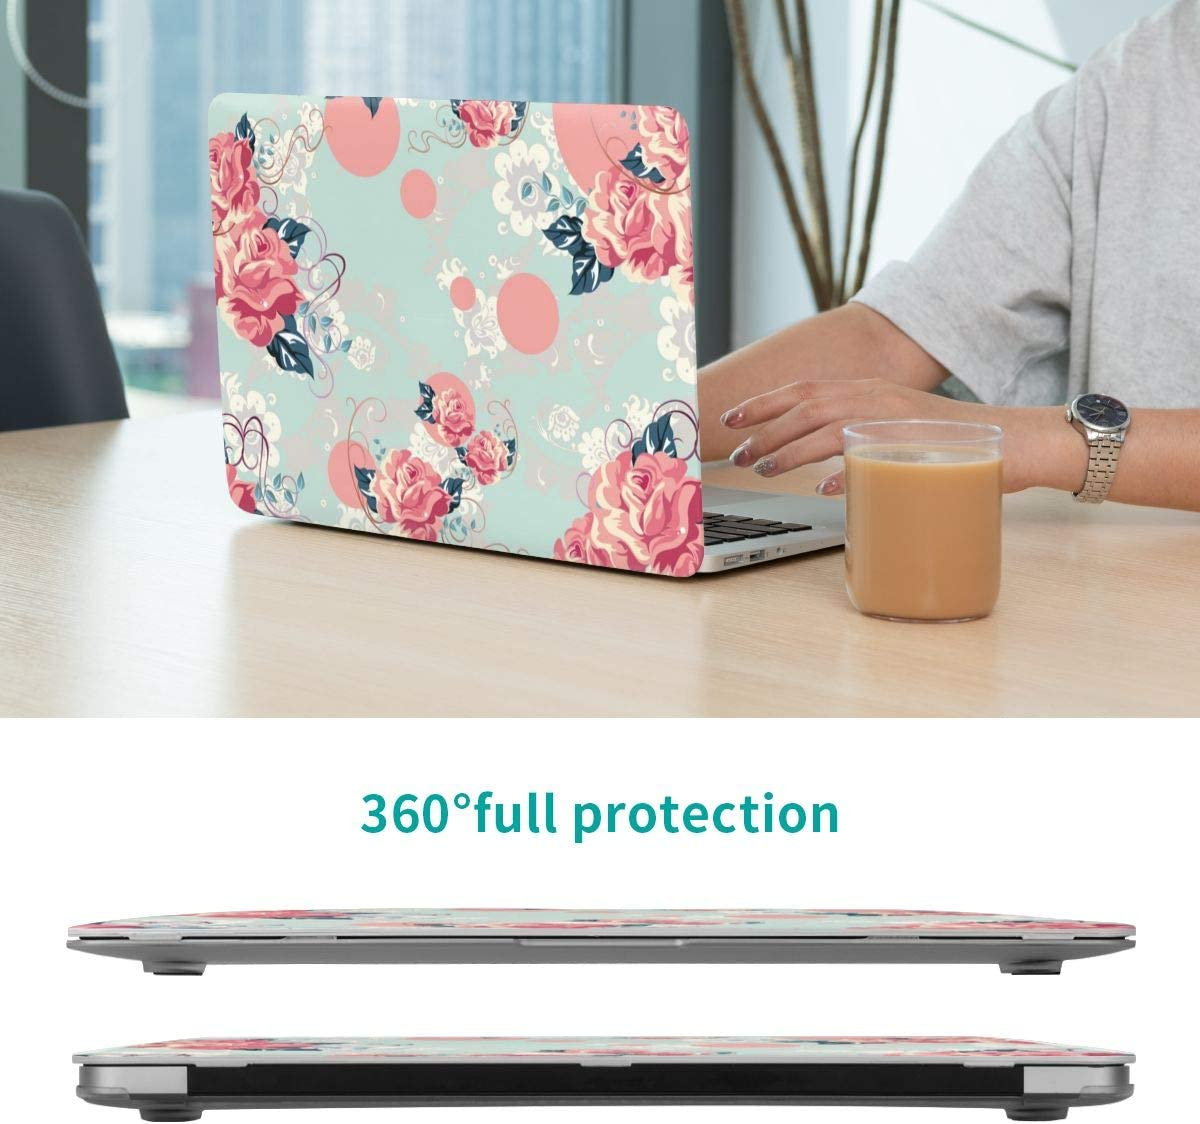 Hard Shell Case Protective Cover for Mac Air 13 Old Version 2017 2016 2015 2014 2013 2012 2011 2010 Vintage Garden Roses Compatible with MacBook Air 13 Inch Case A1466 A1369